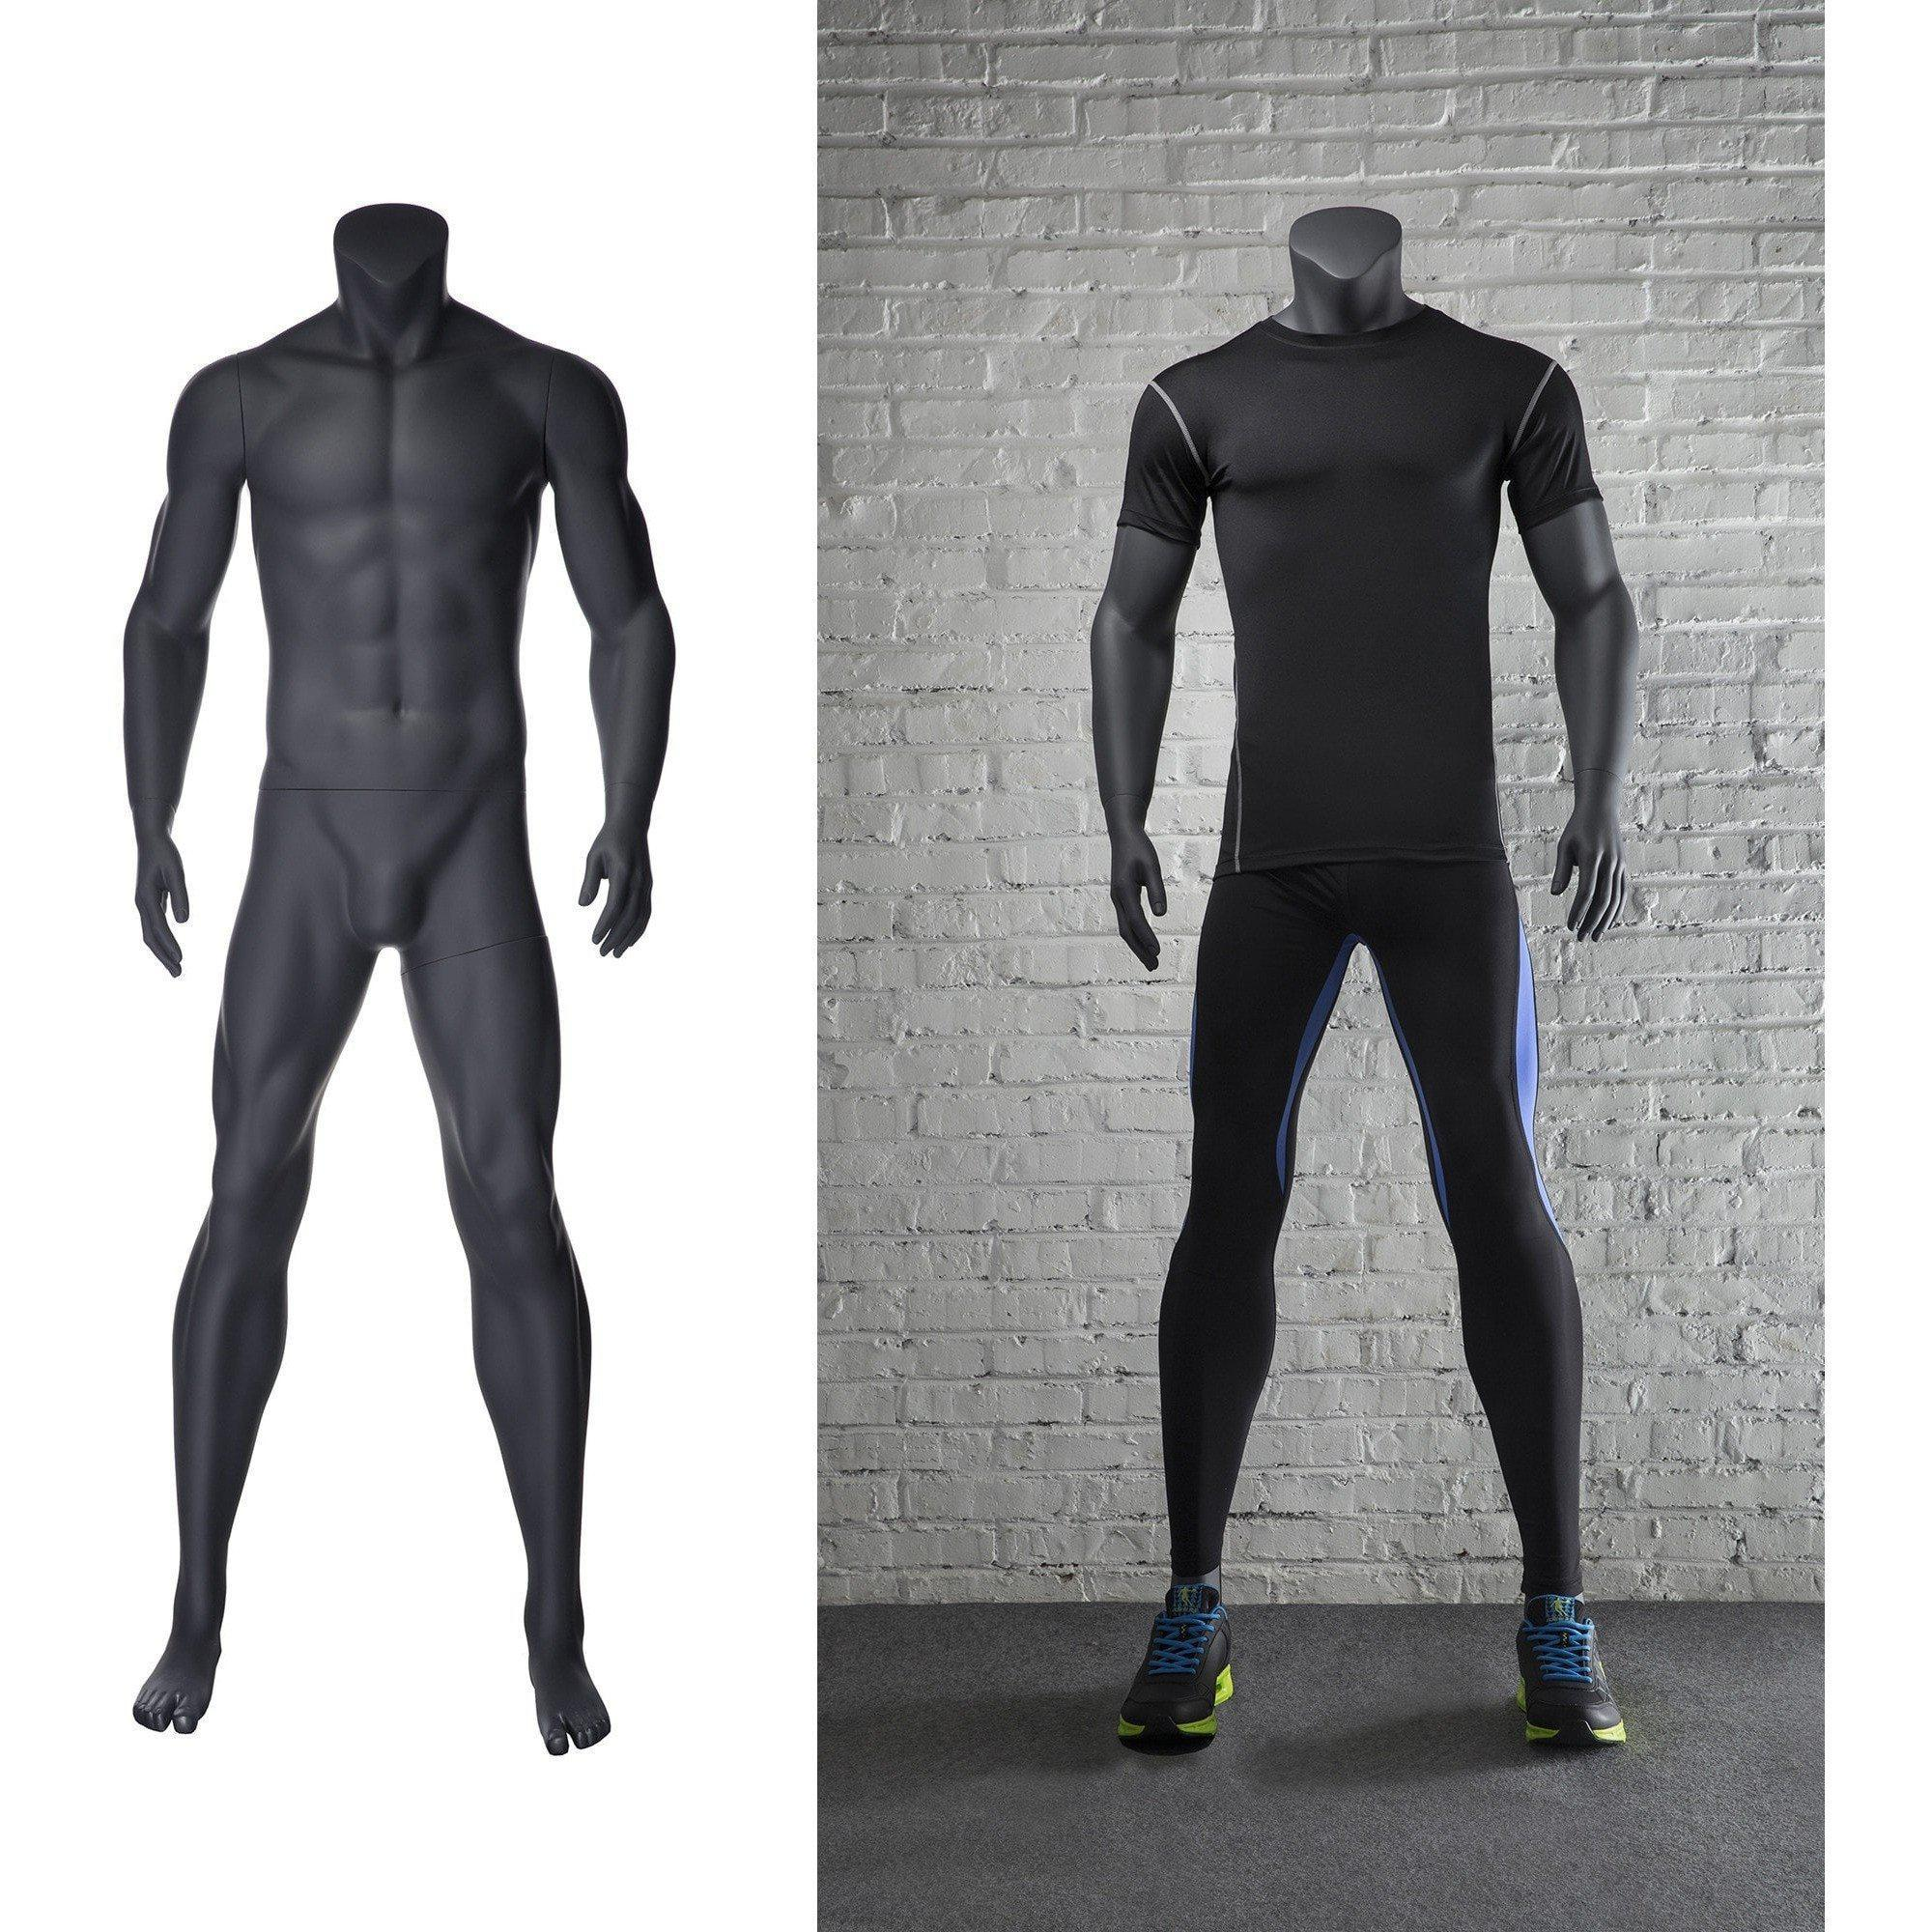 Athletic Headless Male Mannequin MM-NI2